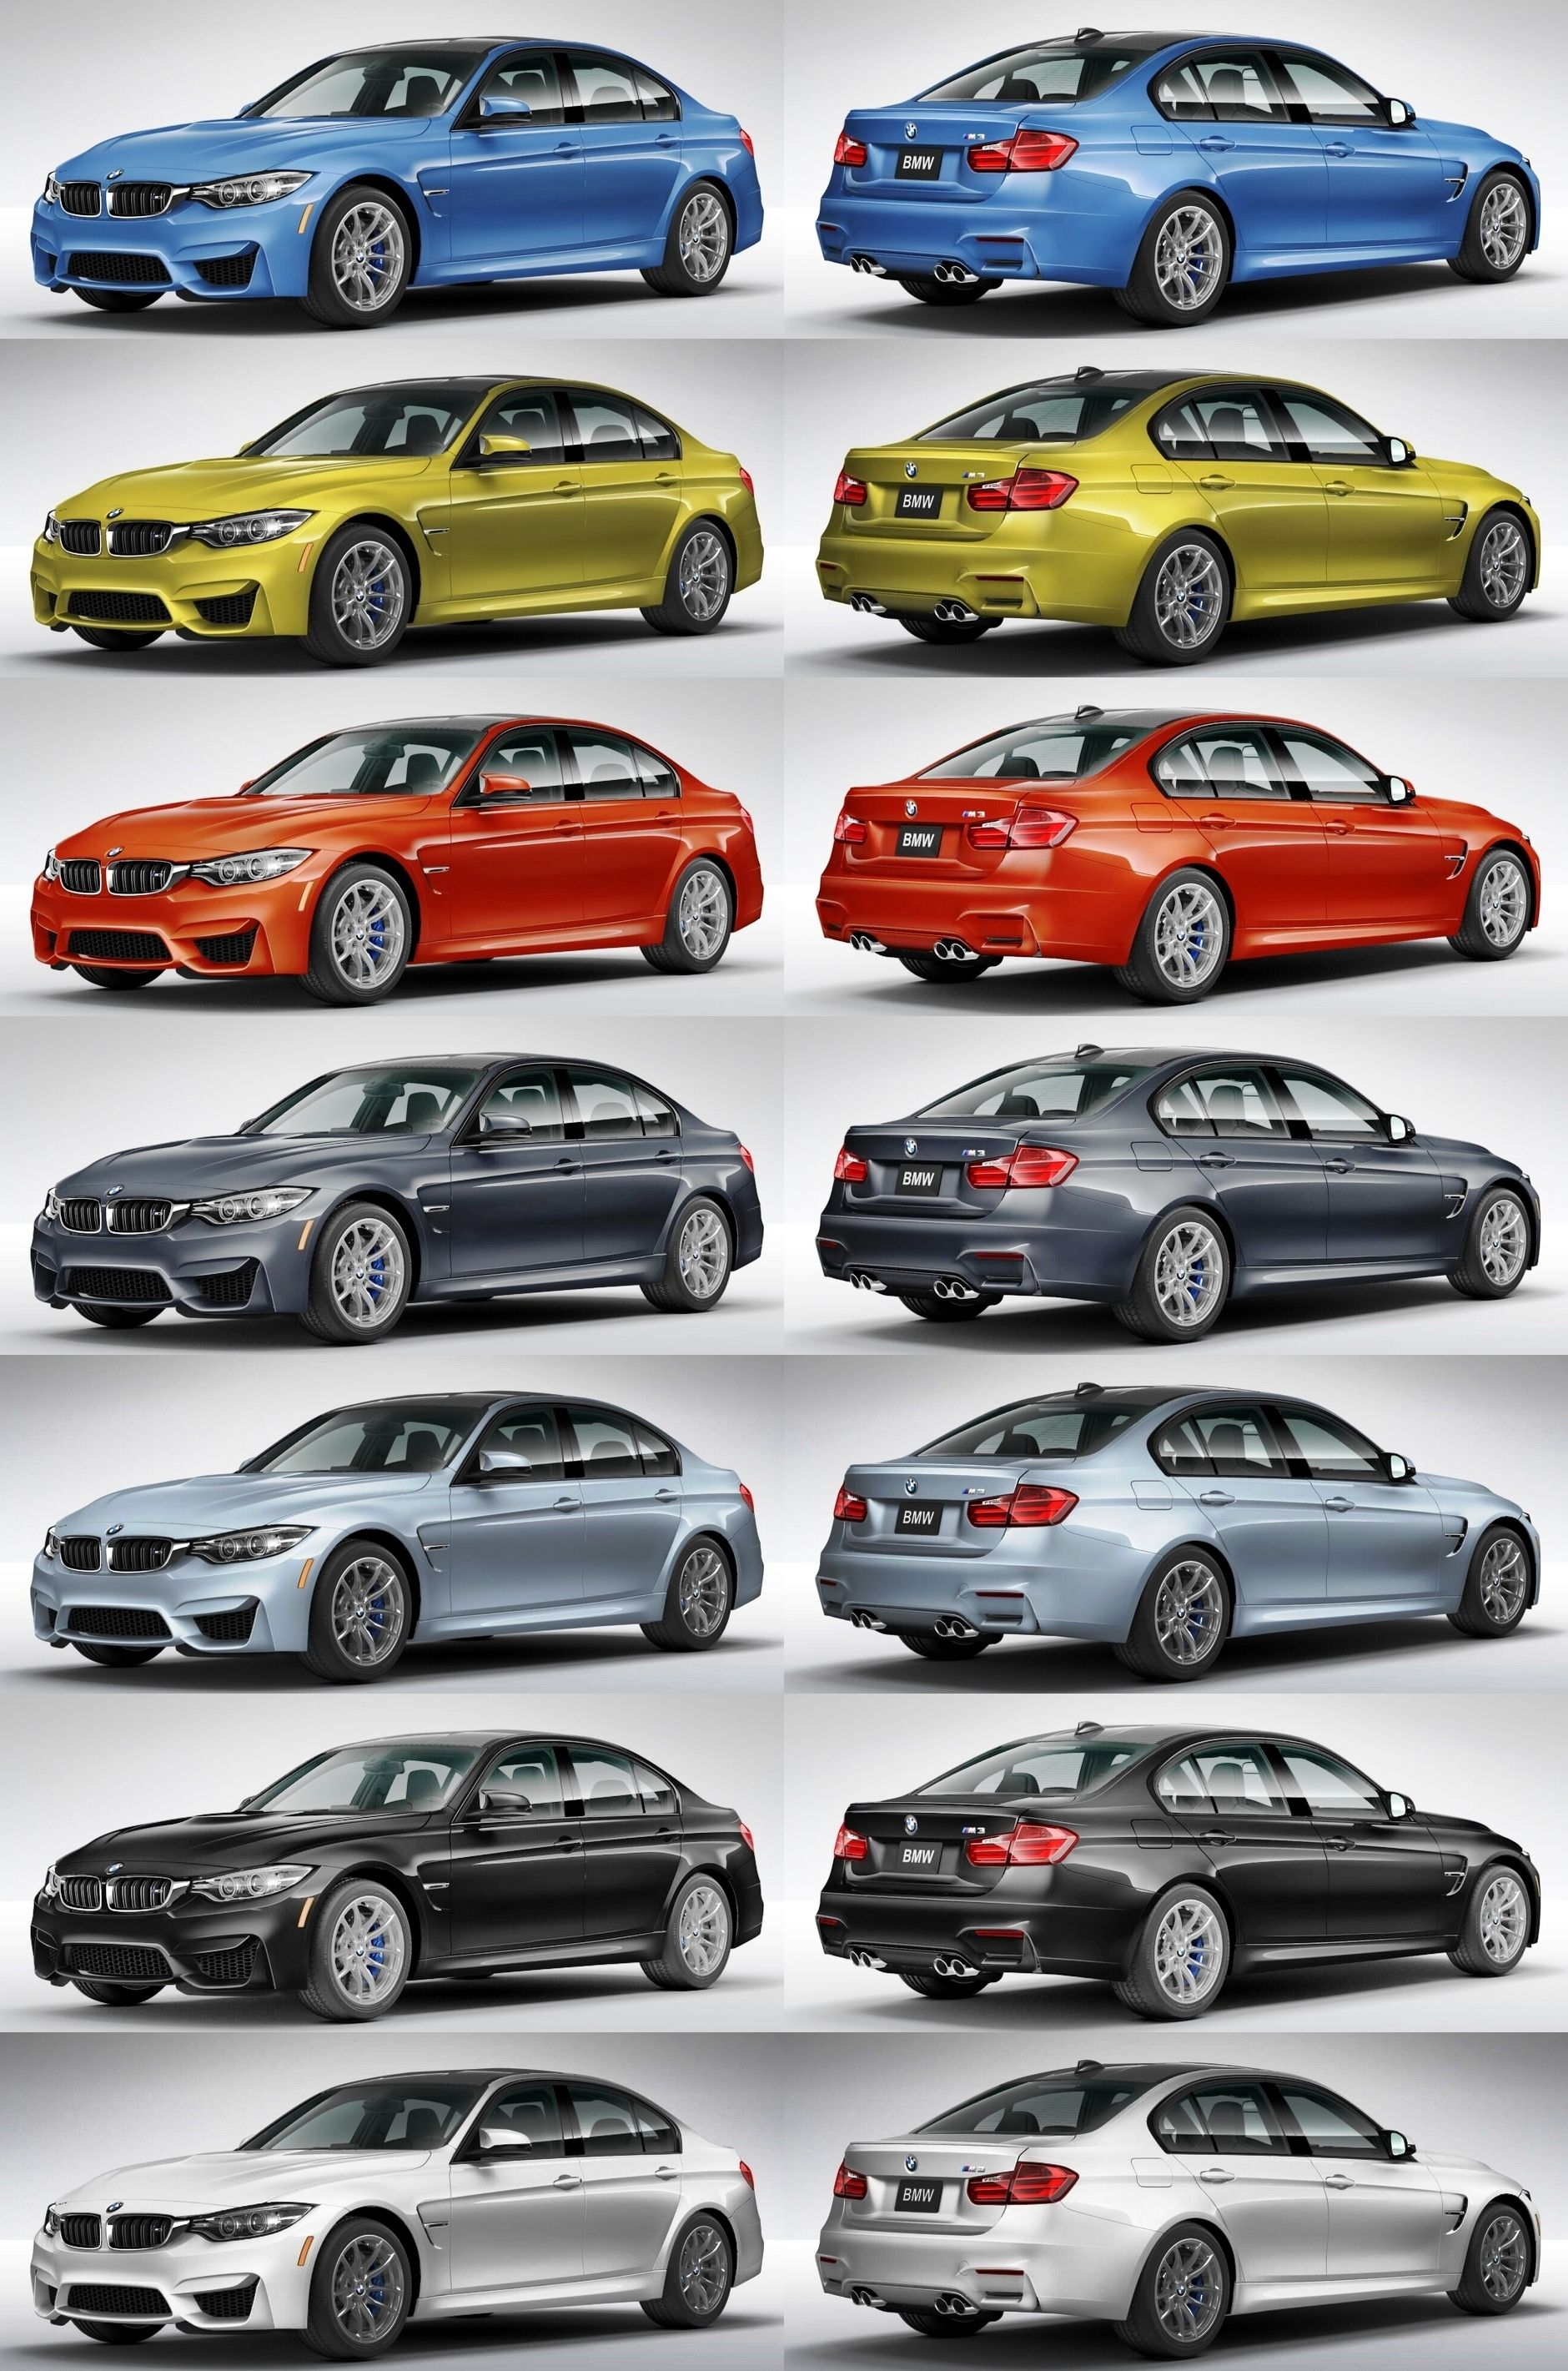 2015 BMW M3 - Configurator Buyers Guide to Options, Colors, Wheels